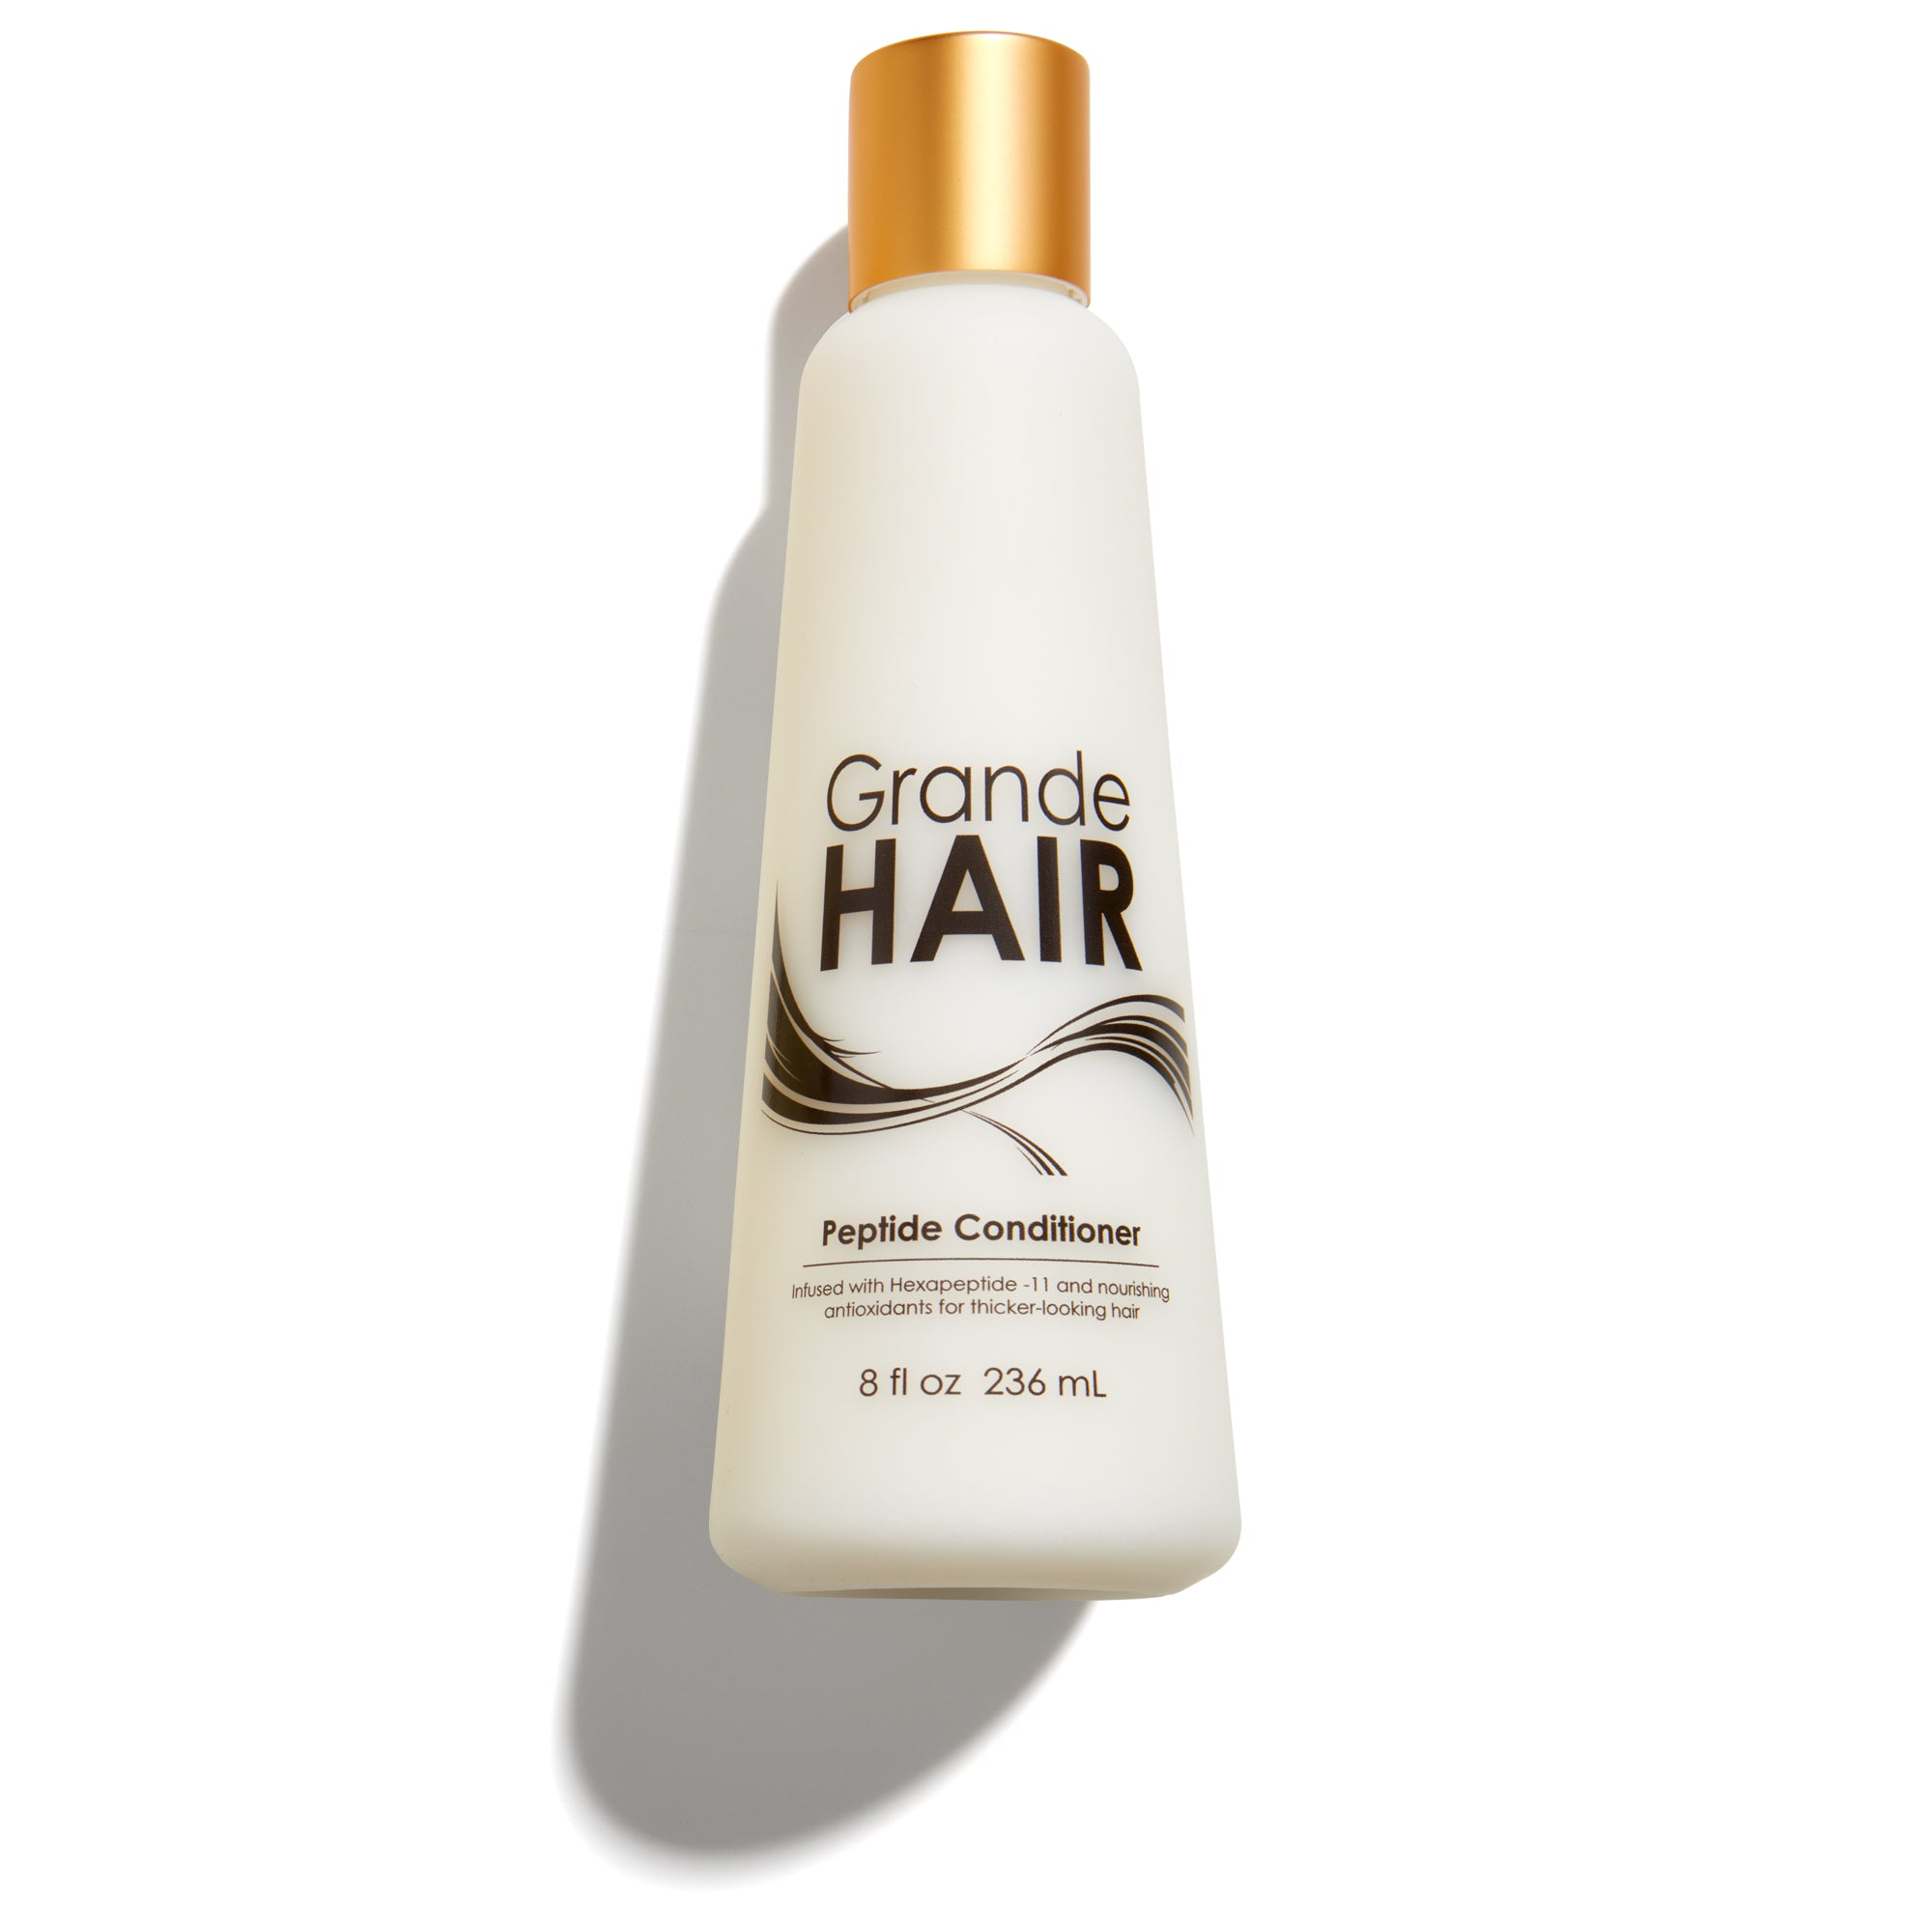 GrandeHAIR Peptide Conditioner